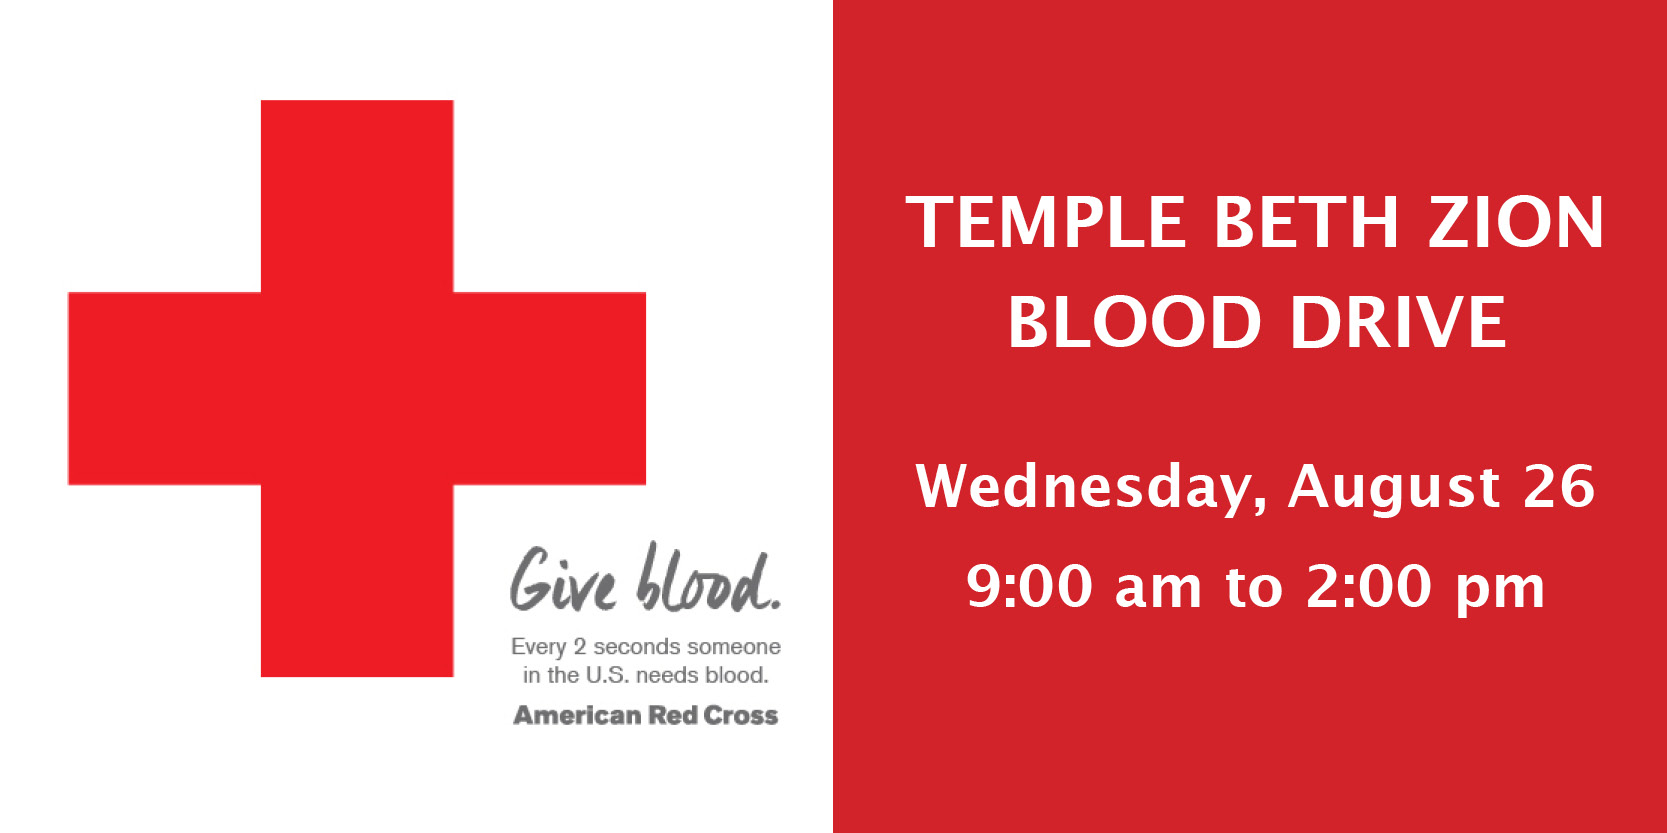 "<a href=""https://www.redcrossblood.org/give.html/drive-results?zipSponsor=BethZion""